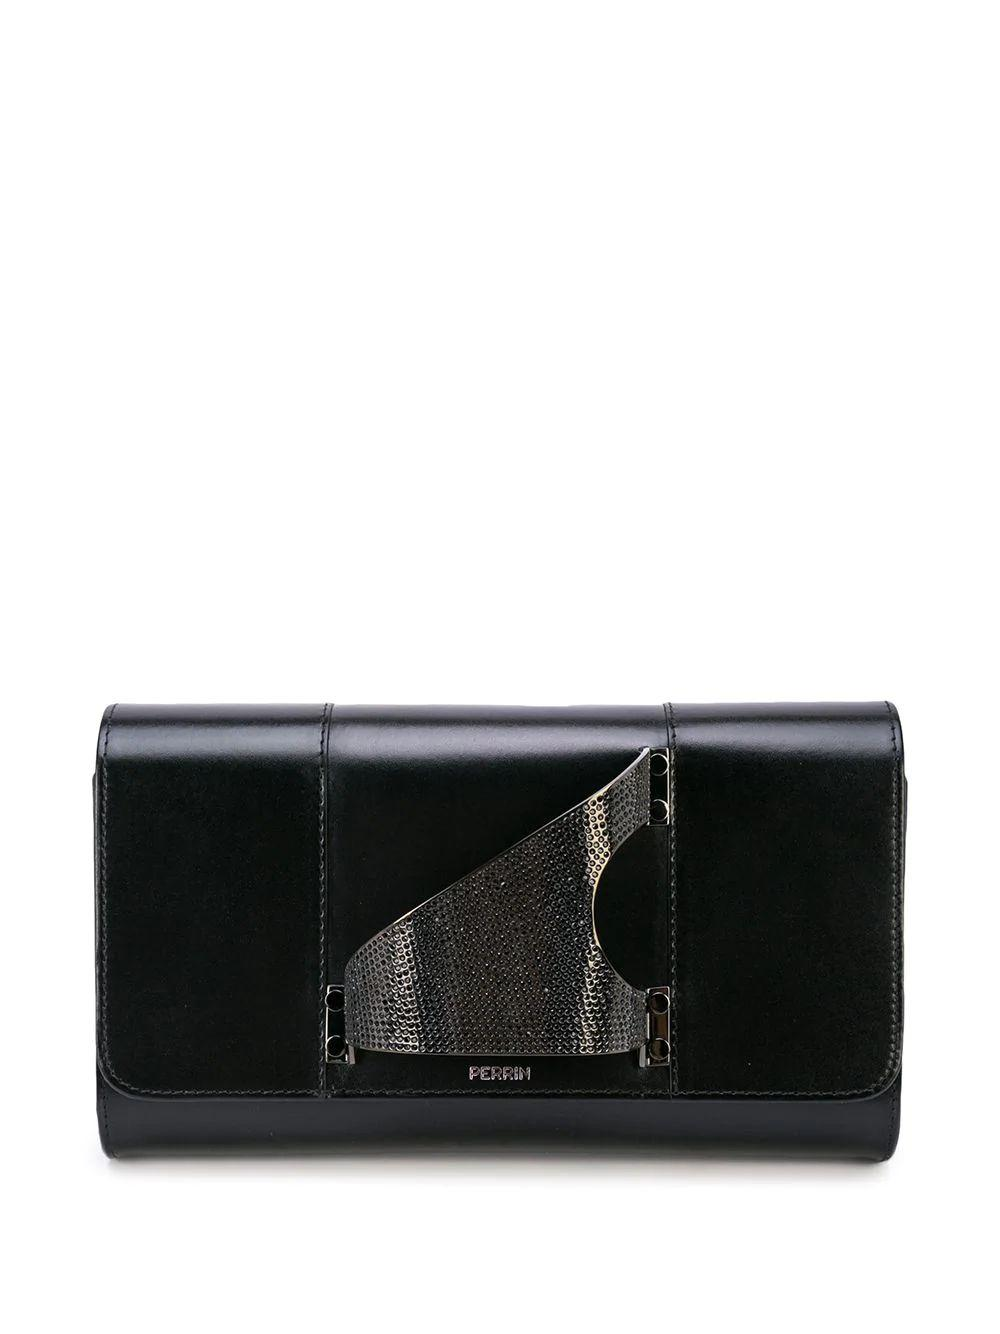 L ' Eiffel Leather Clutch With Strass Ruthenium Item # EIF51BOXSTRAR